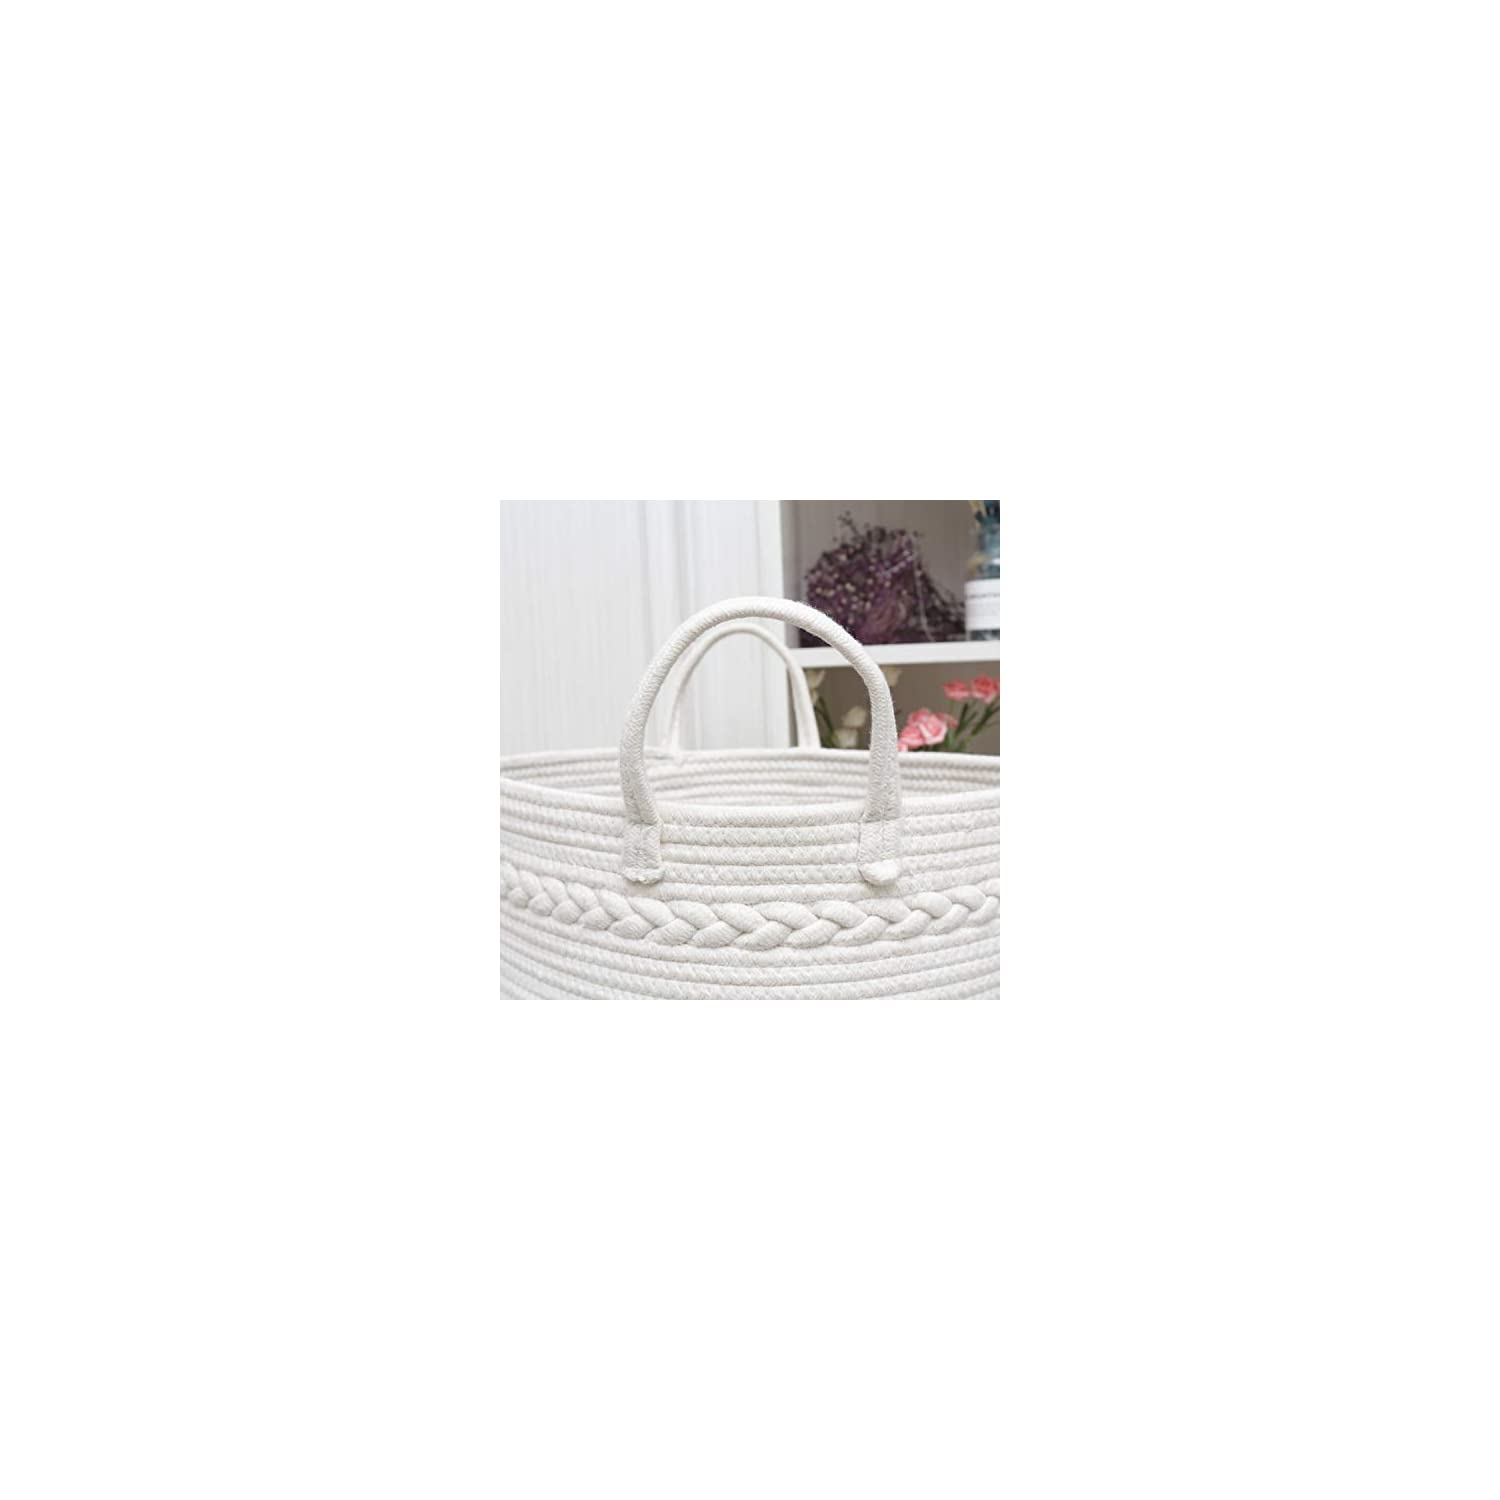 COMEMORY Woven Cotton Rope Basket, Laundry Basket with Easy-Grip Sturdy Handles and Decorative Braid, Decorative Blanket Storage, Baby Nursery Bin for Home Decor and Organizing